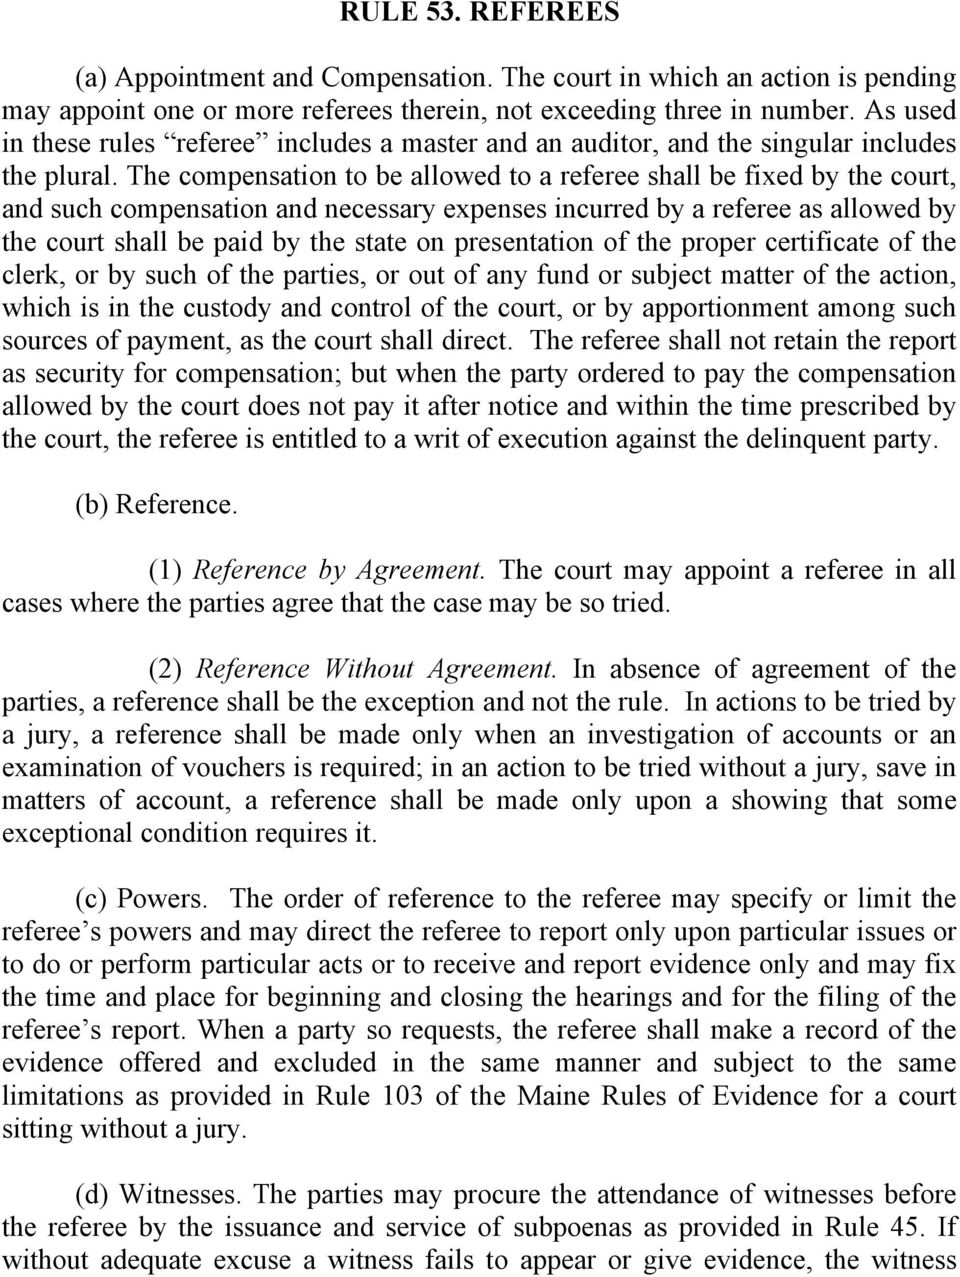 The compensation to be allowed to a referee shall be fixed by the court, and such compensation and necessary expenses incurred by a referee as allowed by the court shall be paid by the state on